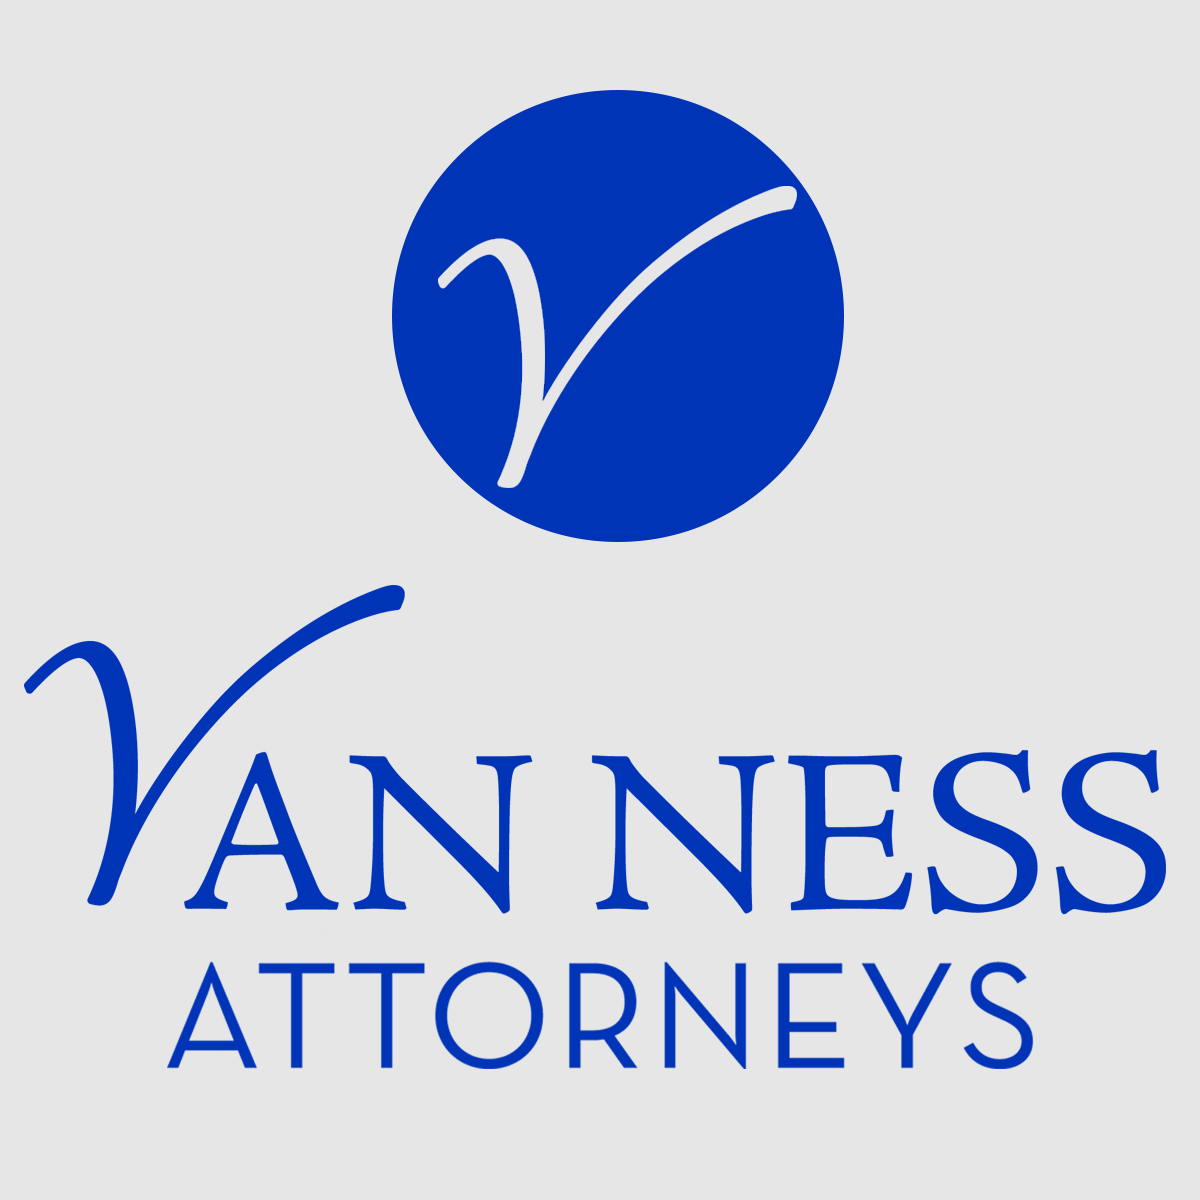 Van Ness Attorneys